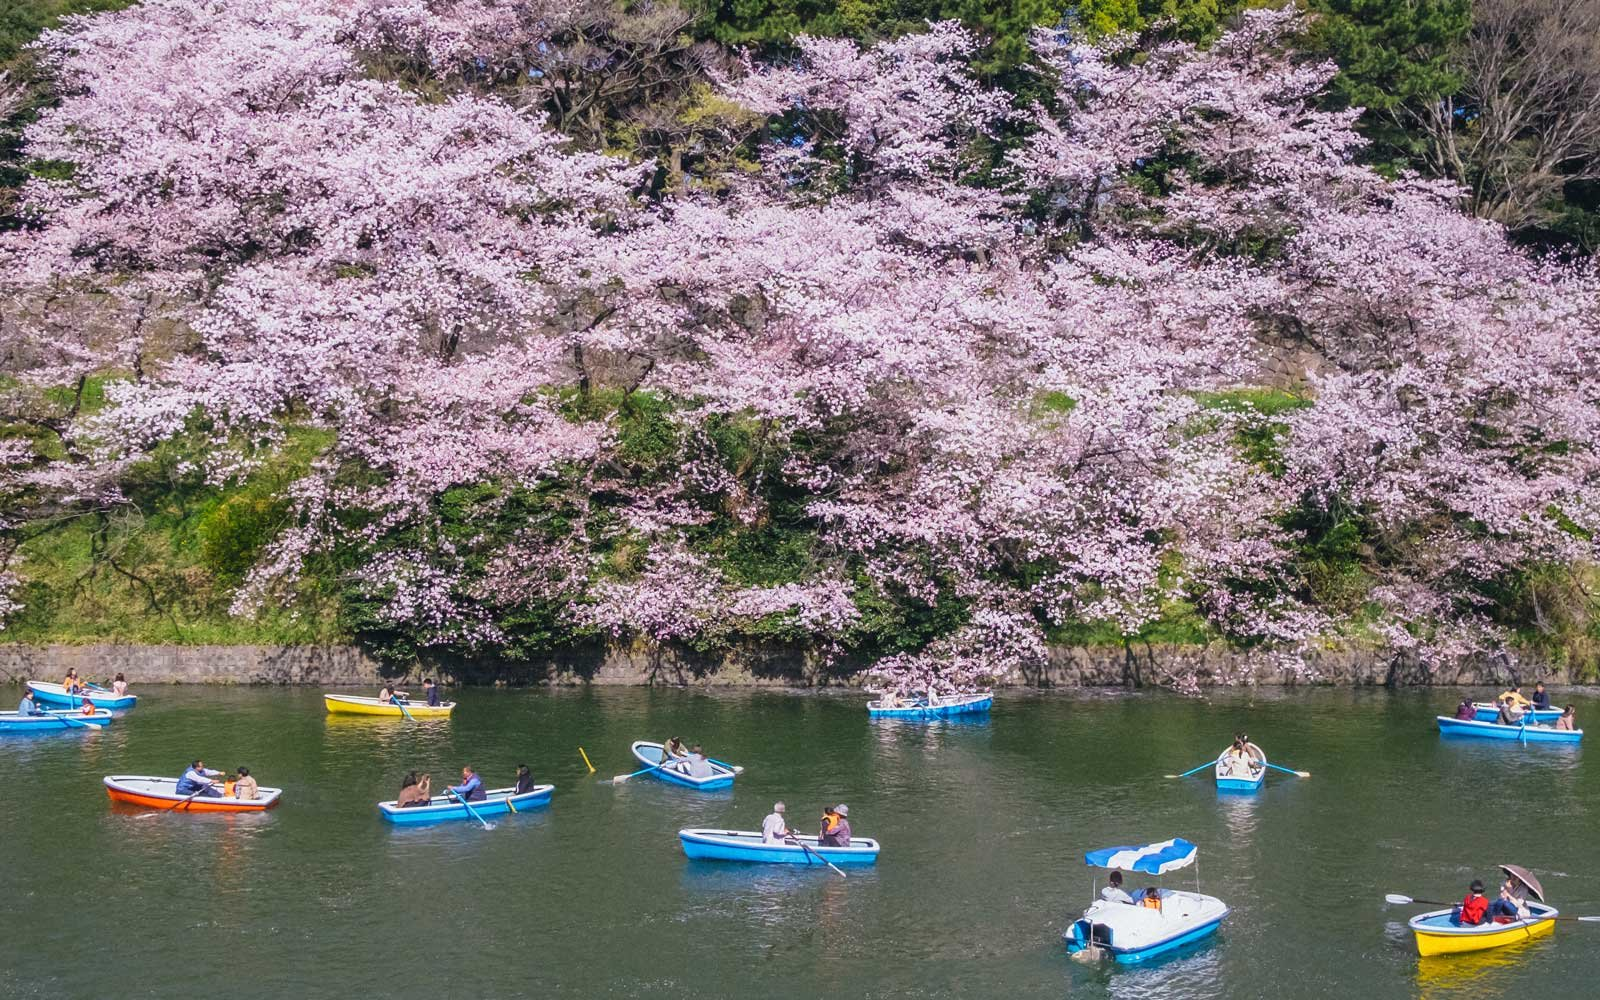 Cherry blossoms are seen in full bloom in Japan.